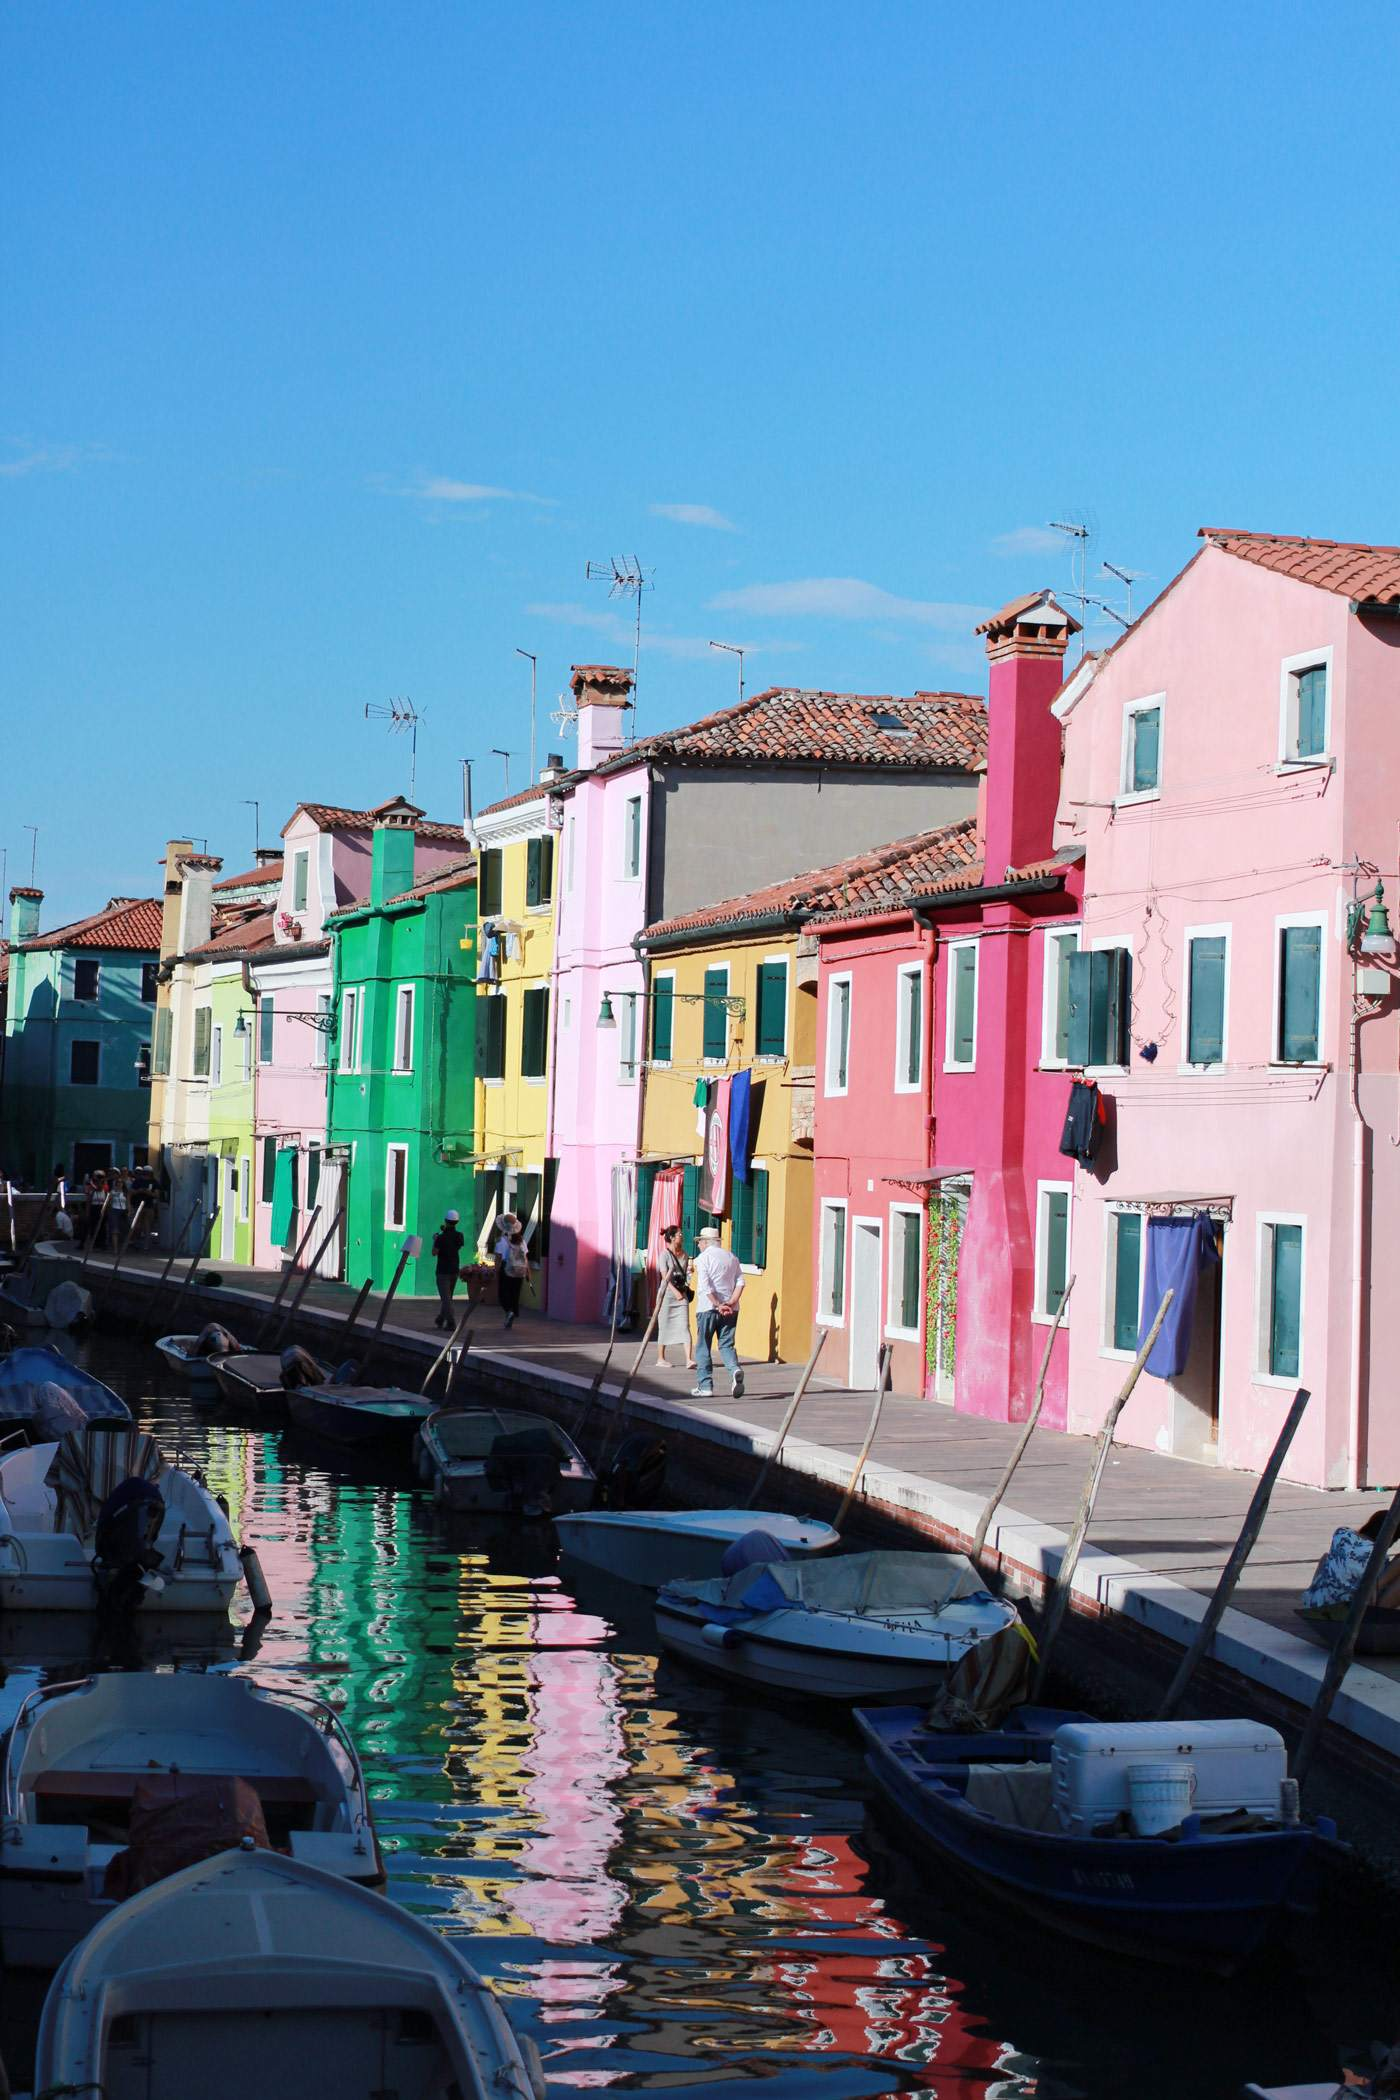 venice-italy-burano-island-venezia-travel-blogger-photography-7